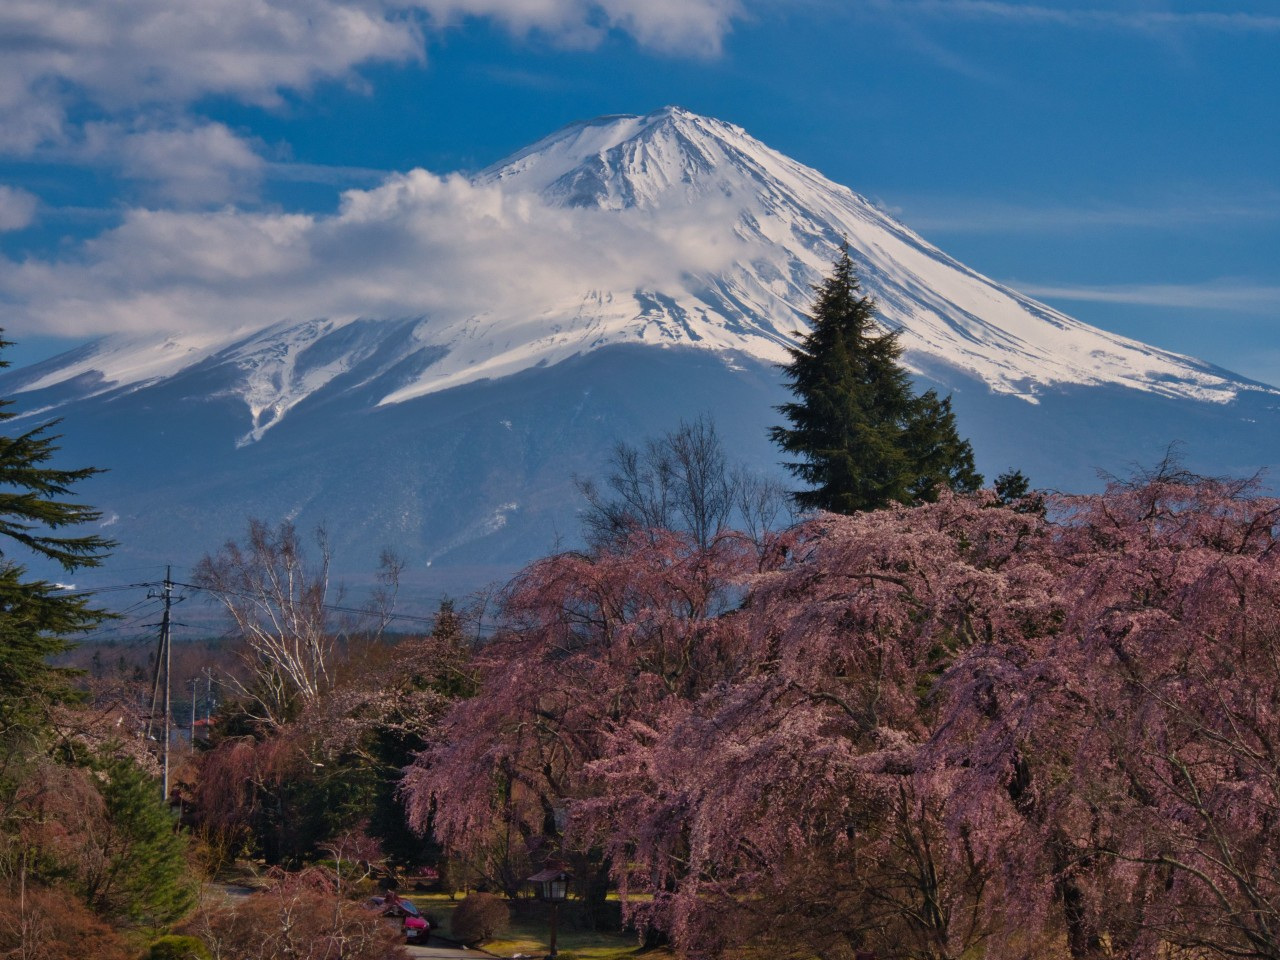 Mount Fuji from the Lake Kawaguchi-Ko area